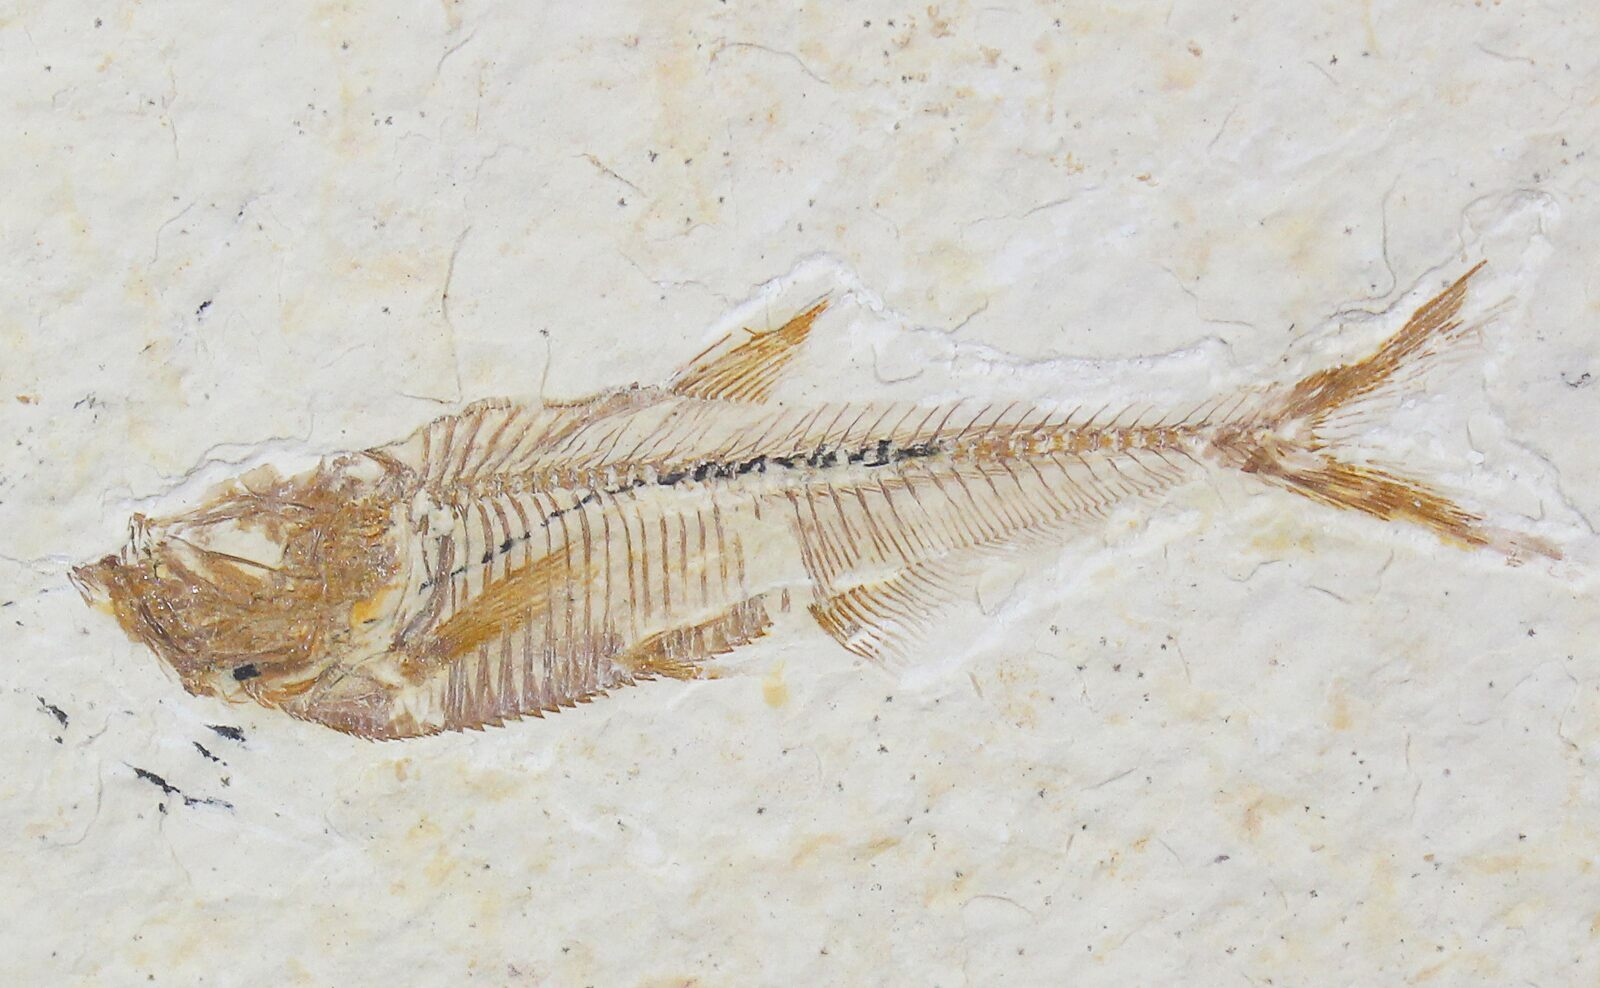 1 9 diplomystus fossil fish wyoming for sale 22319 for Fish fossils for sale